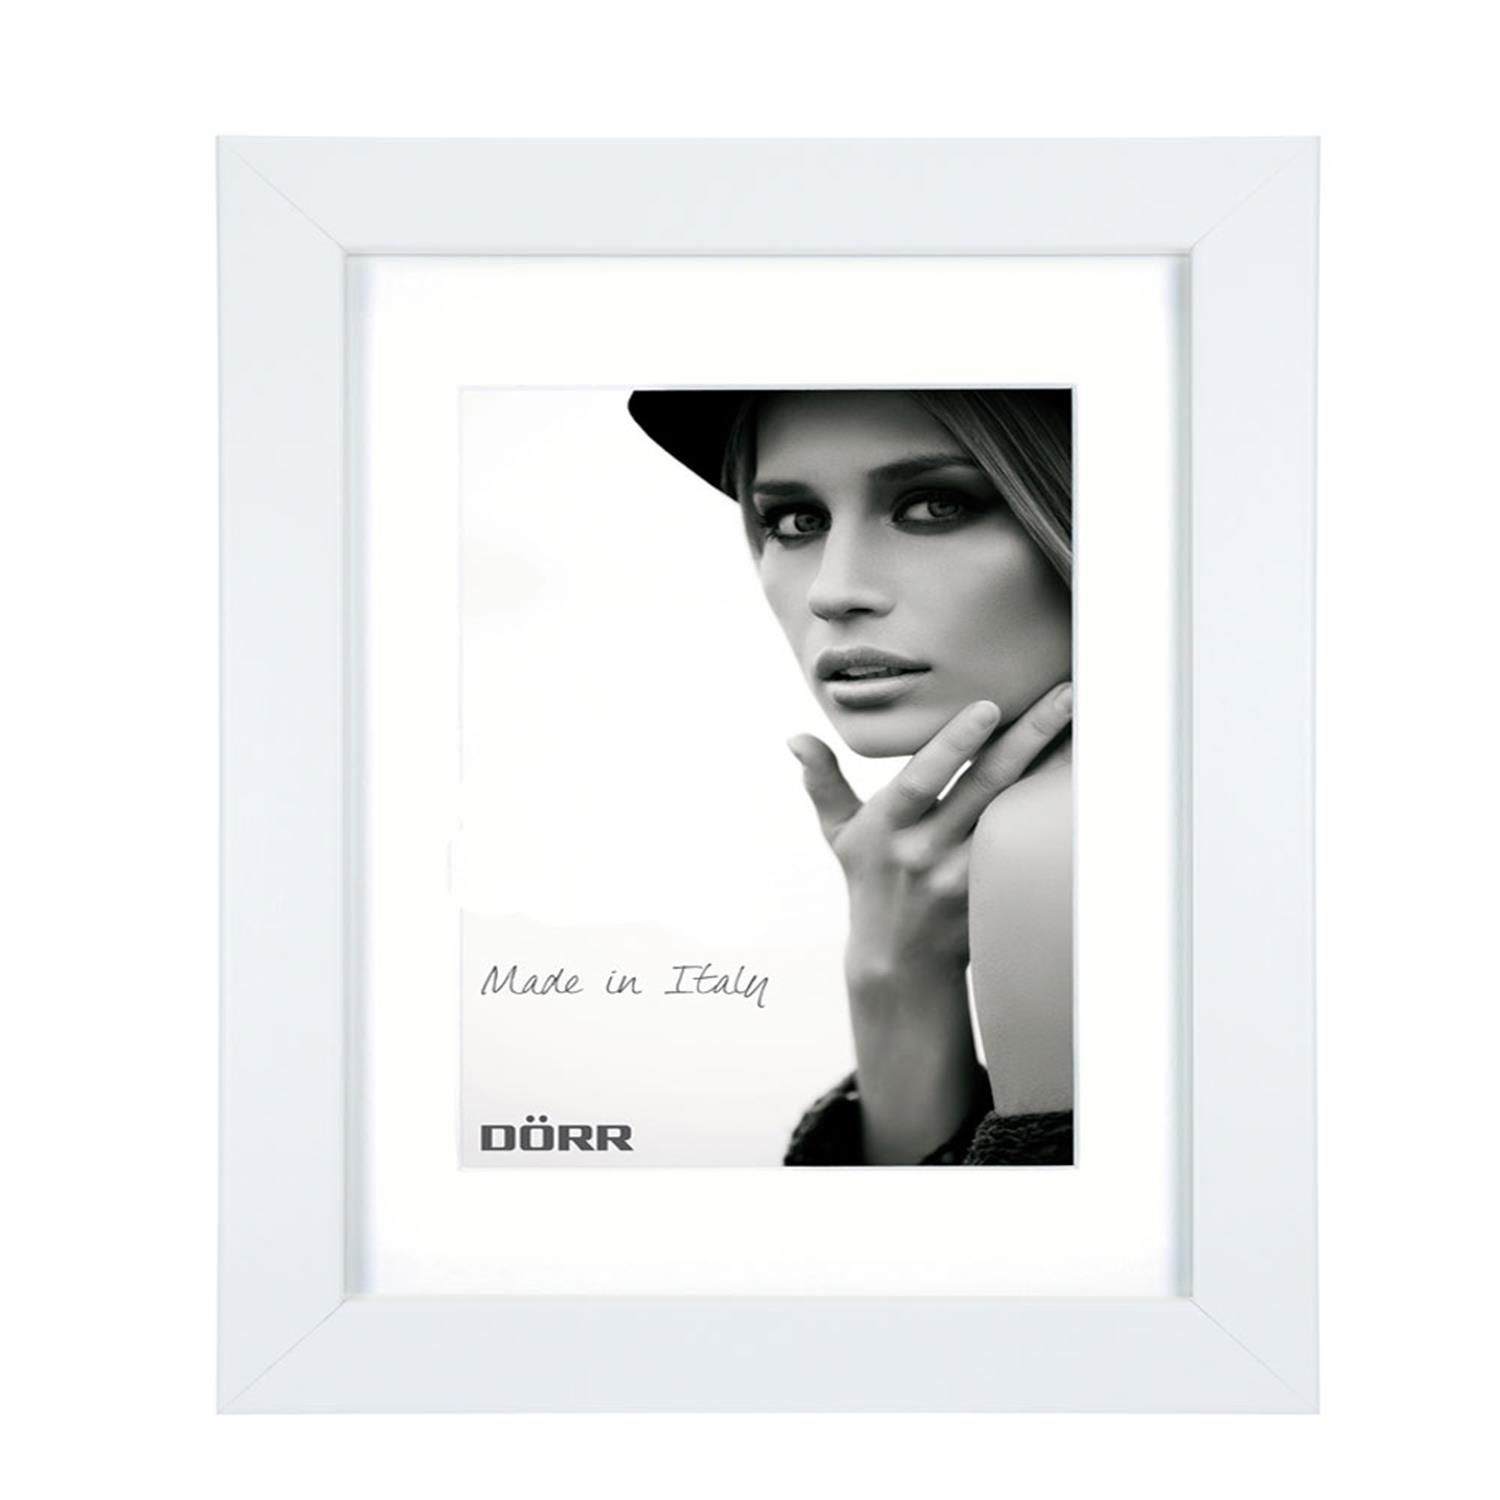 Dorr Bloc White 20x16 inch Wood Photo Frame with 16x12 inch insert